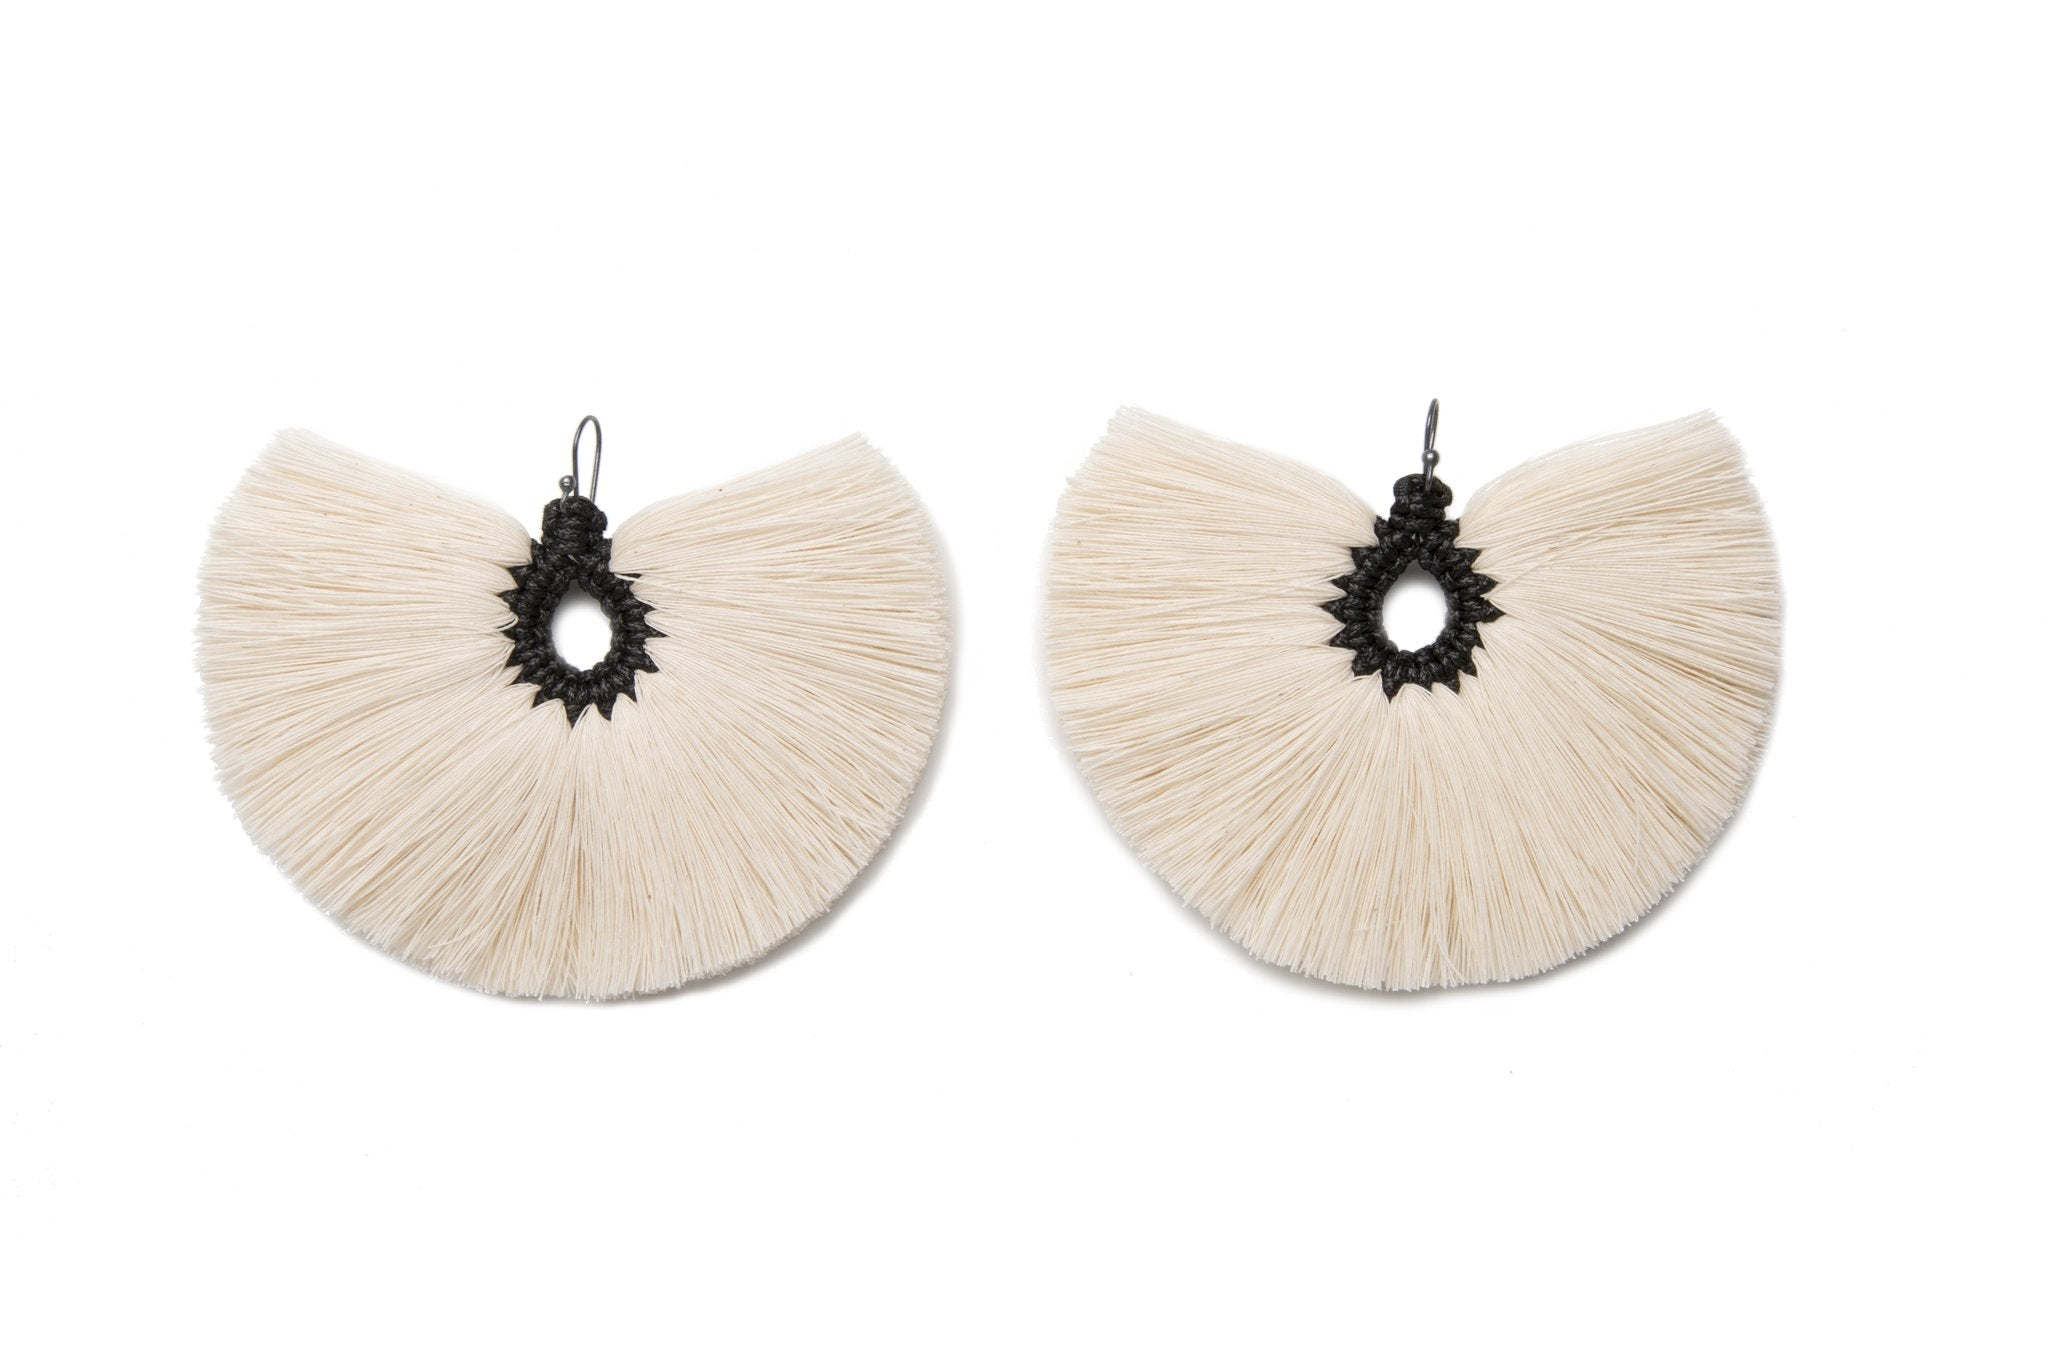 Penacho Earrings - Natural / Black